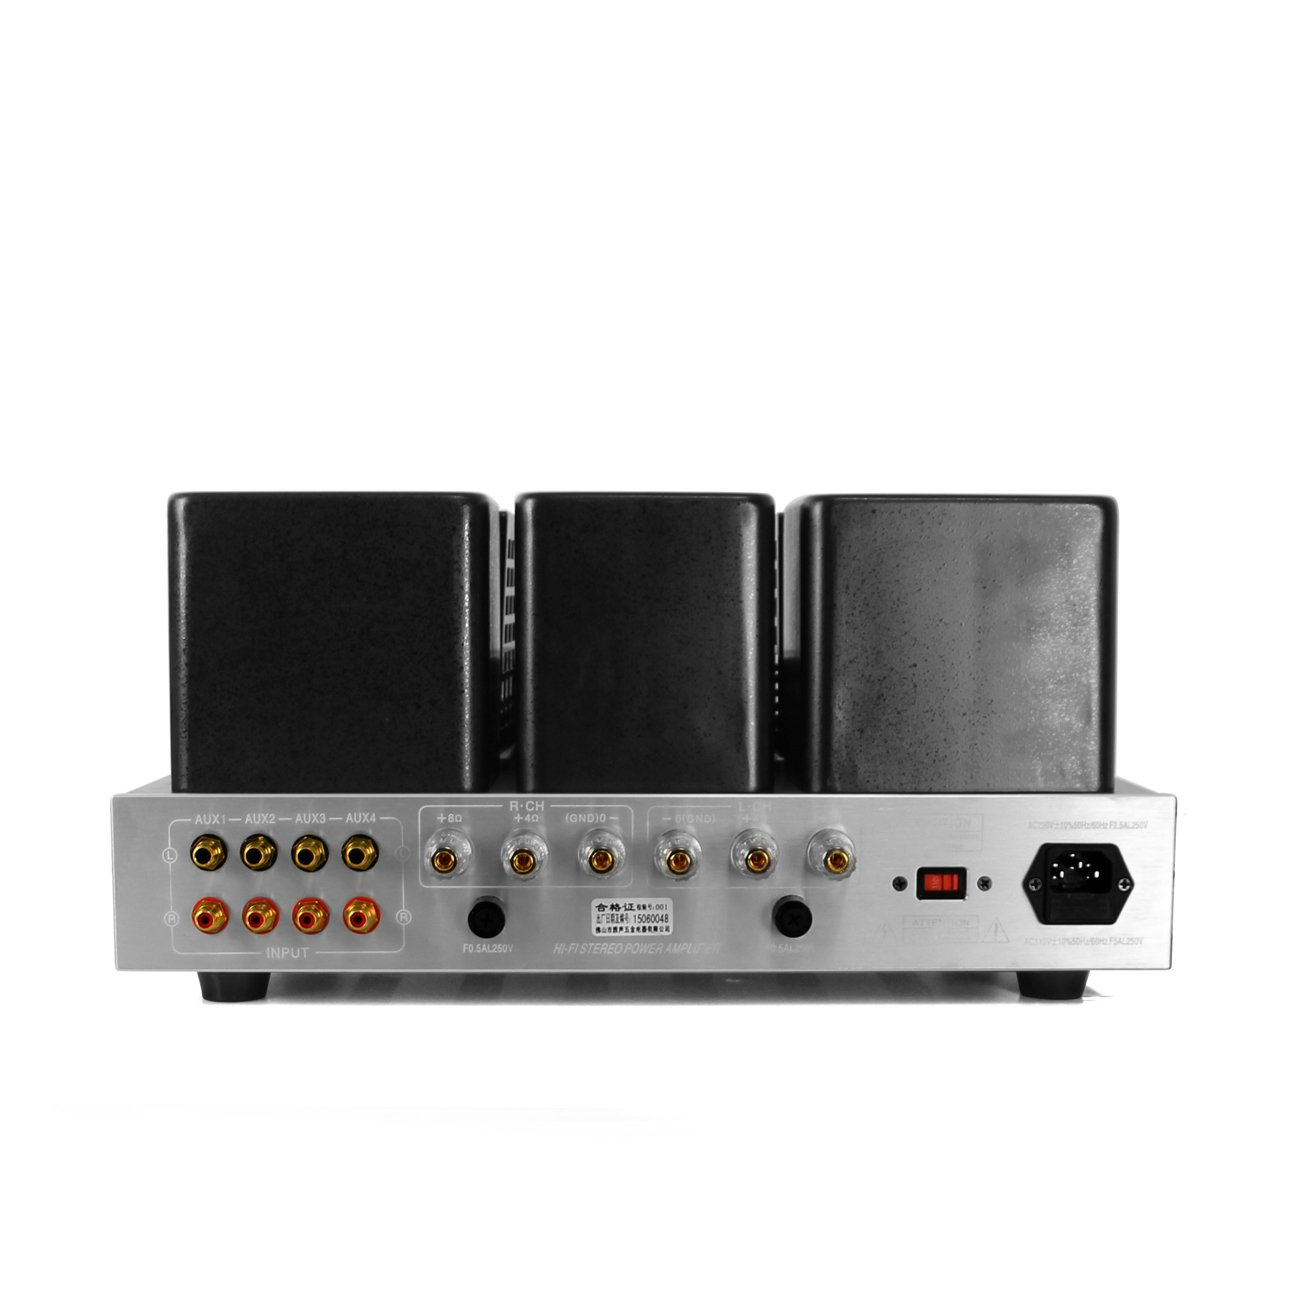 Yaqin Ms 30l El34b Hi Fi Integrated Push Pull Tube Pushpull 45 Amplifiers Blog Amplifier With Remote Control Headphone Output Electronics